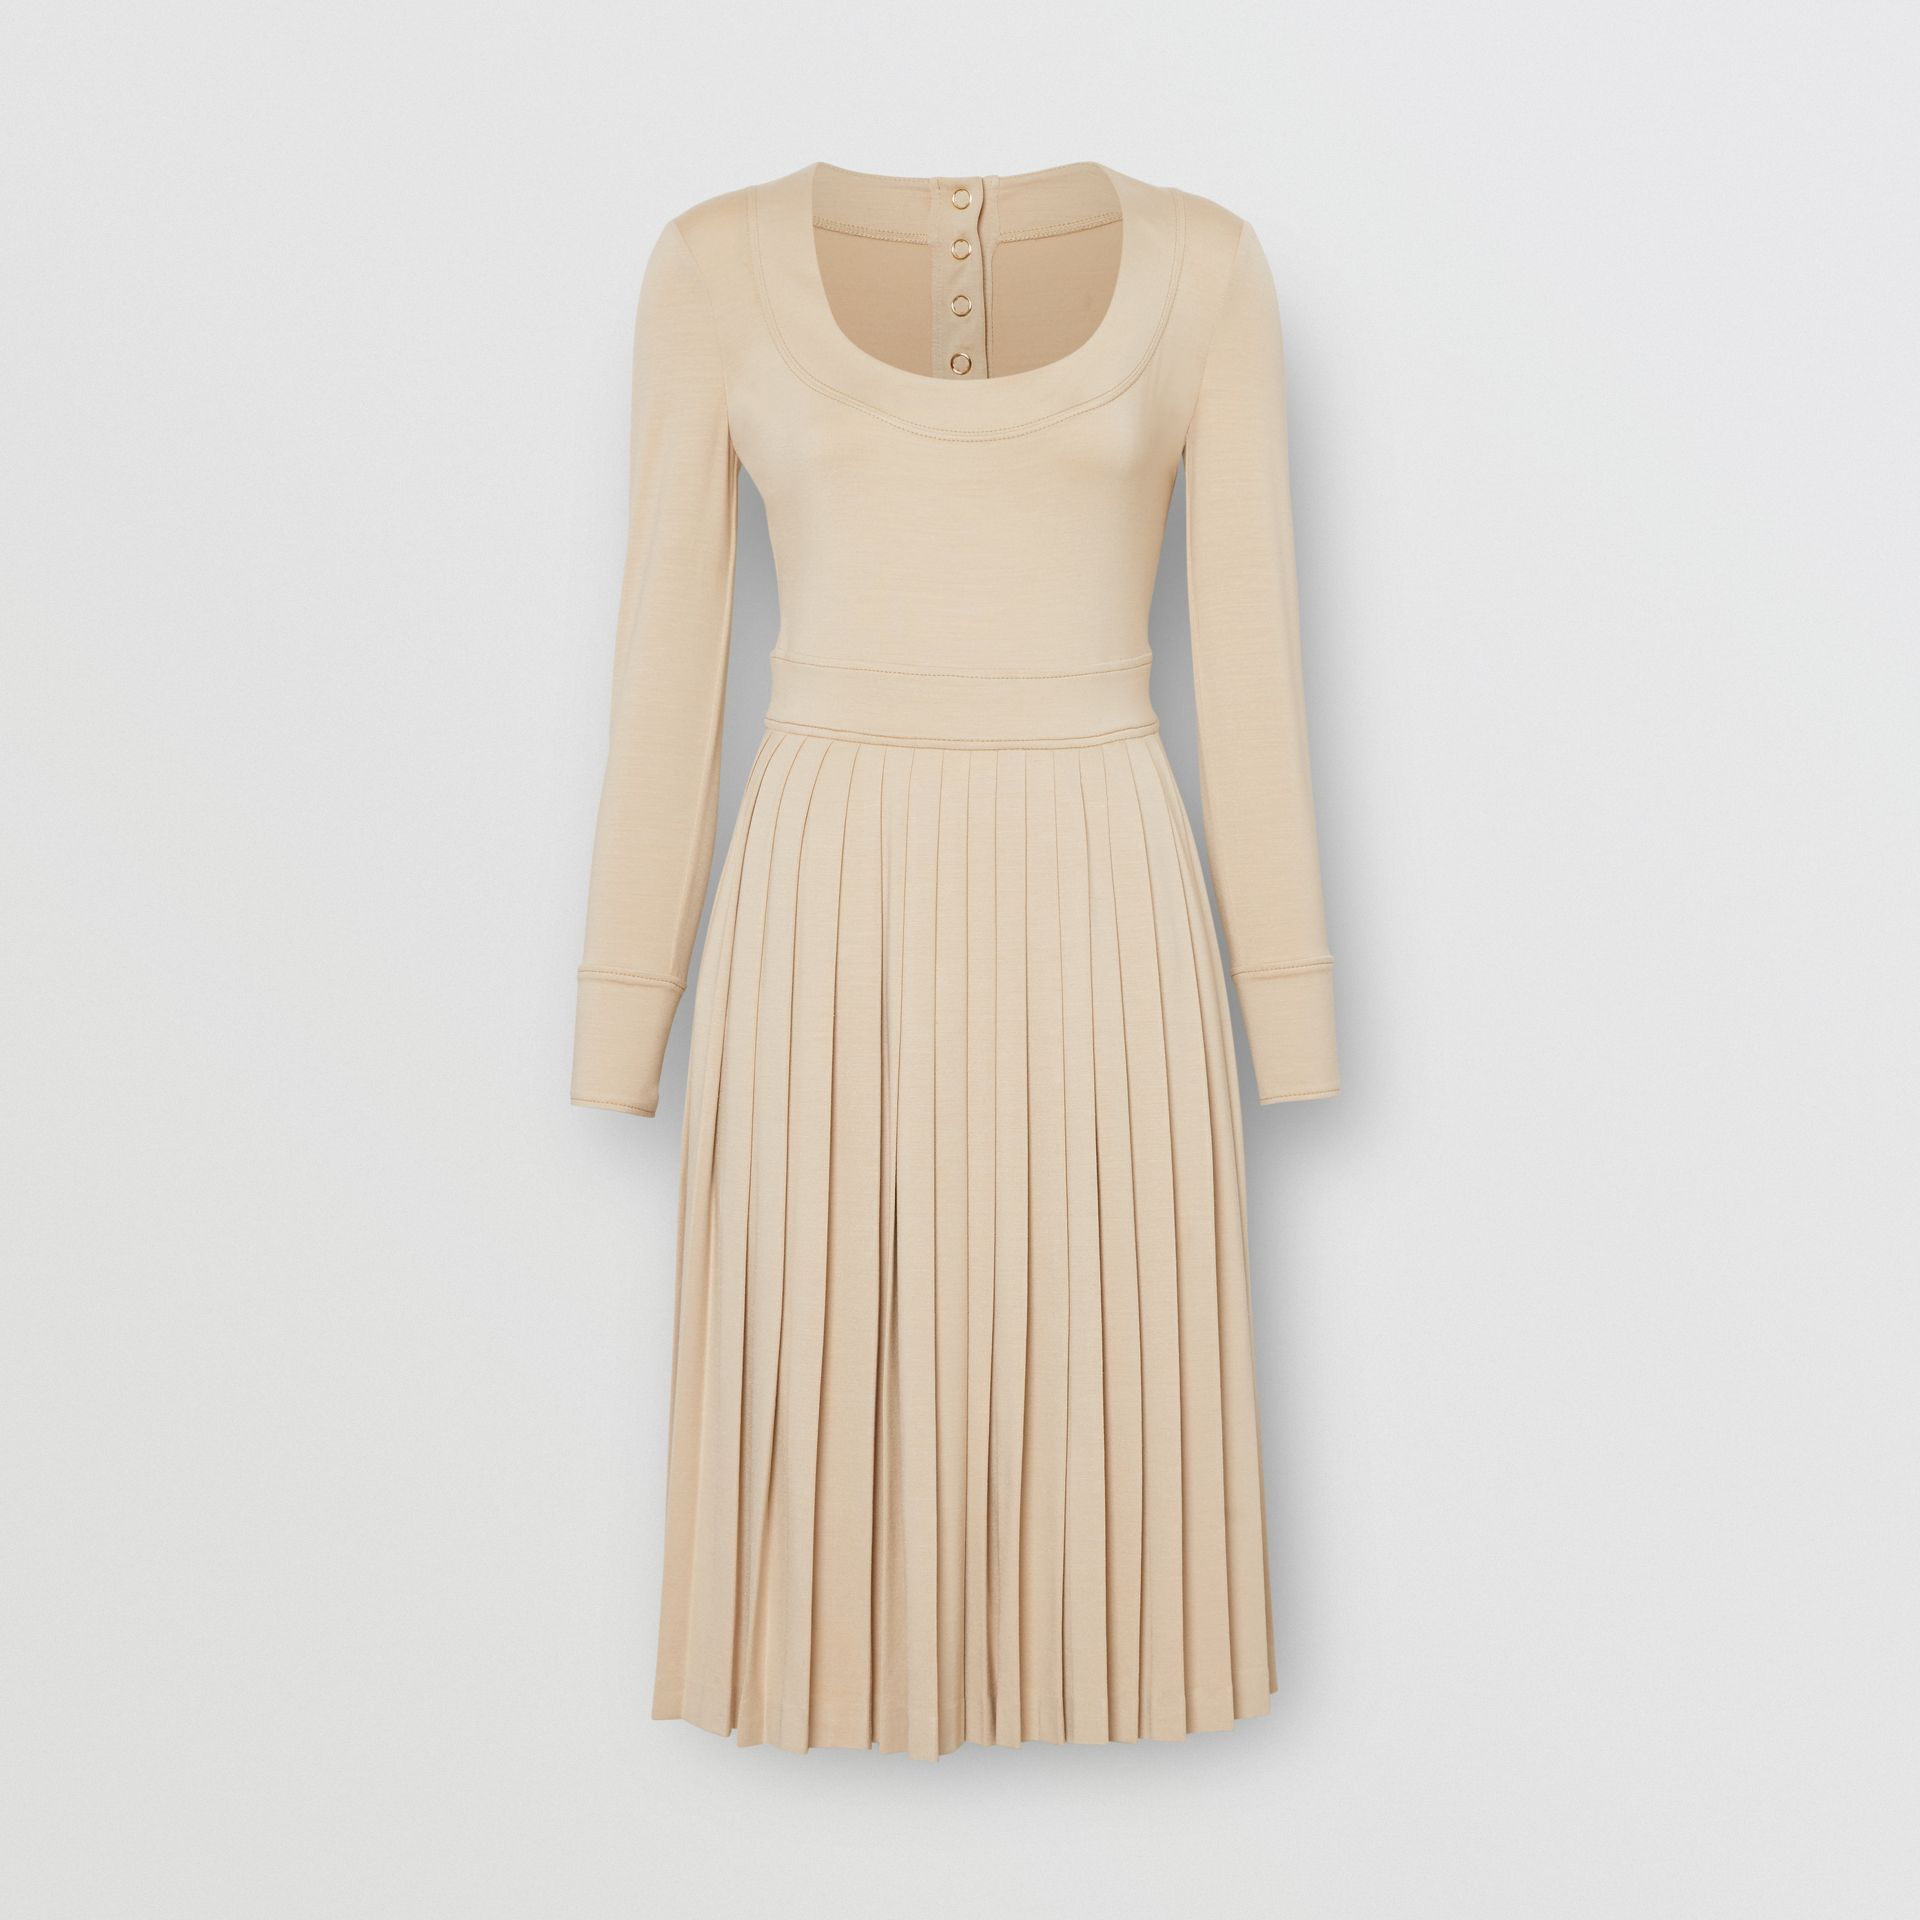 Long-sleeve Pleated Dress in Teddy Beige - Women | Burberry - gallery image 3